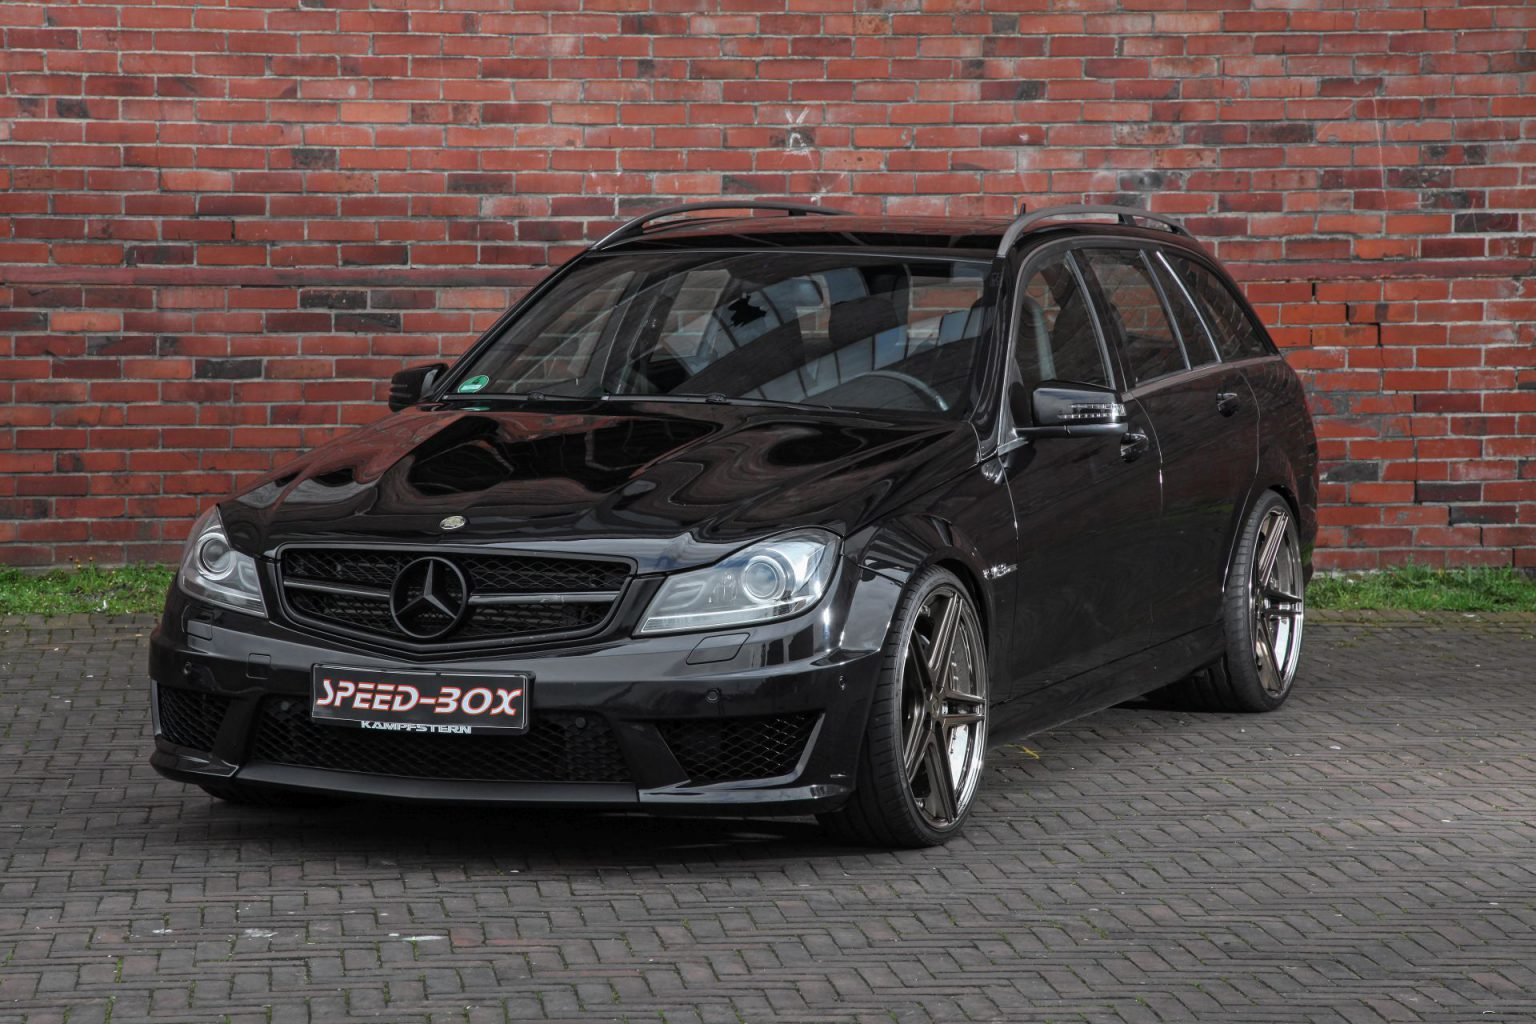 mercedes c63 amg felgen by raceland fs line schmidt felgen. Black Bedroom Furniture Sets. Home Design Ideas